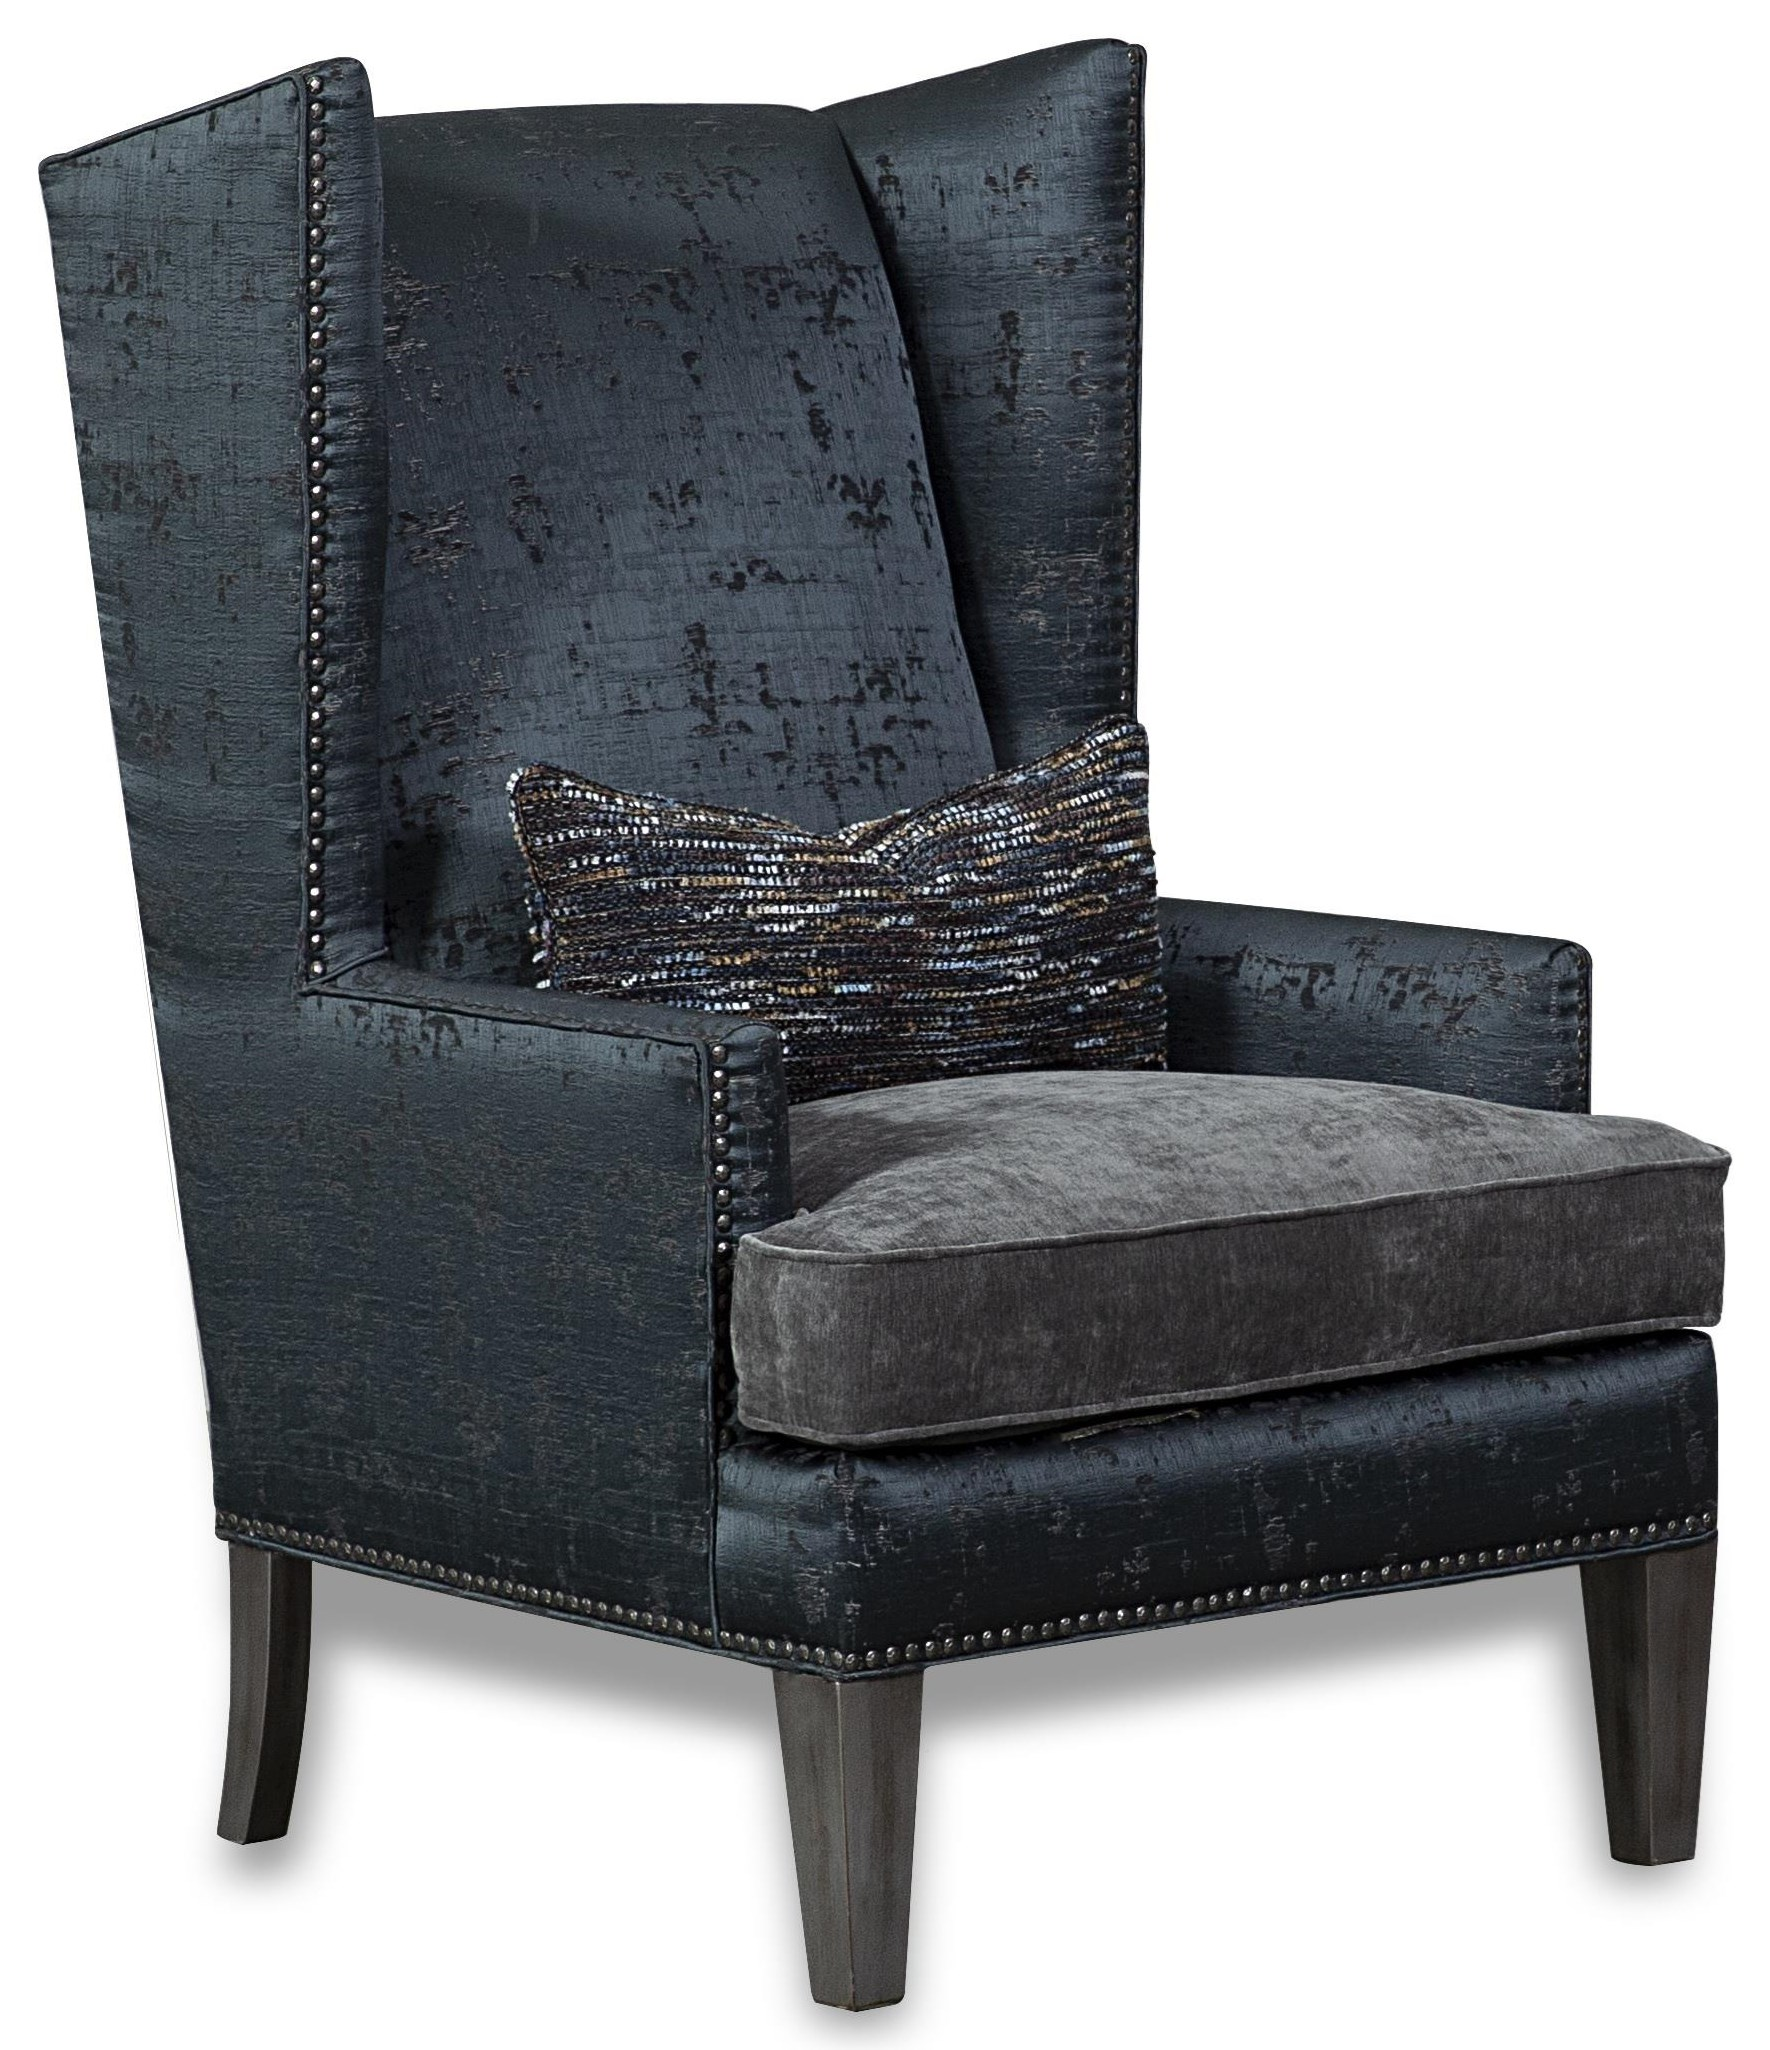 Baron - Baron Accent Chair by Aria Designs at Morris Home